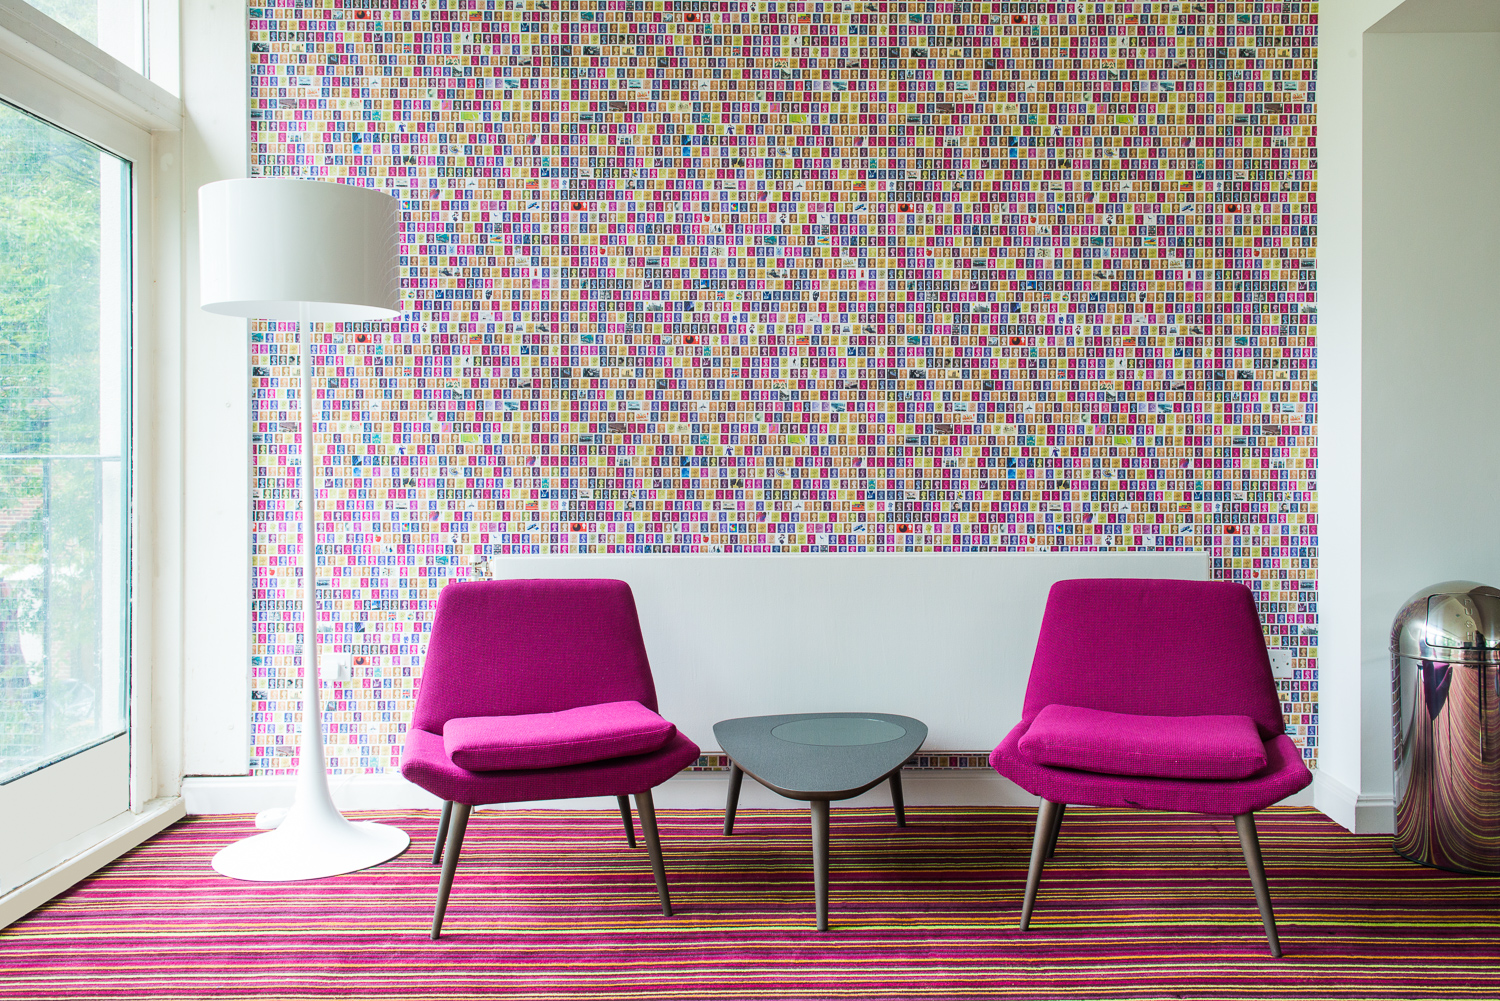 ... and interiors industry, Lunar offer their clients a personalised interior project management, sourcing and procurement service whether the project is a ...